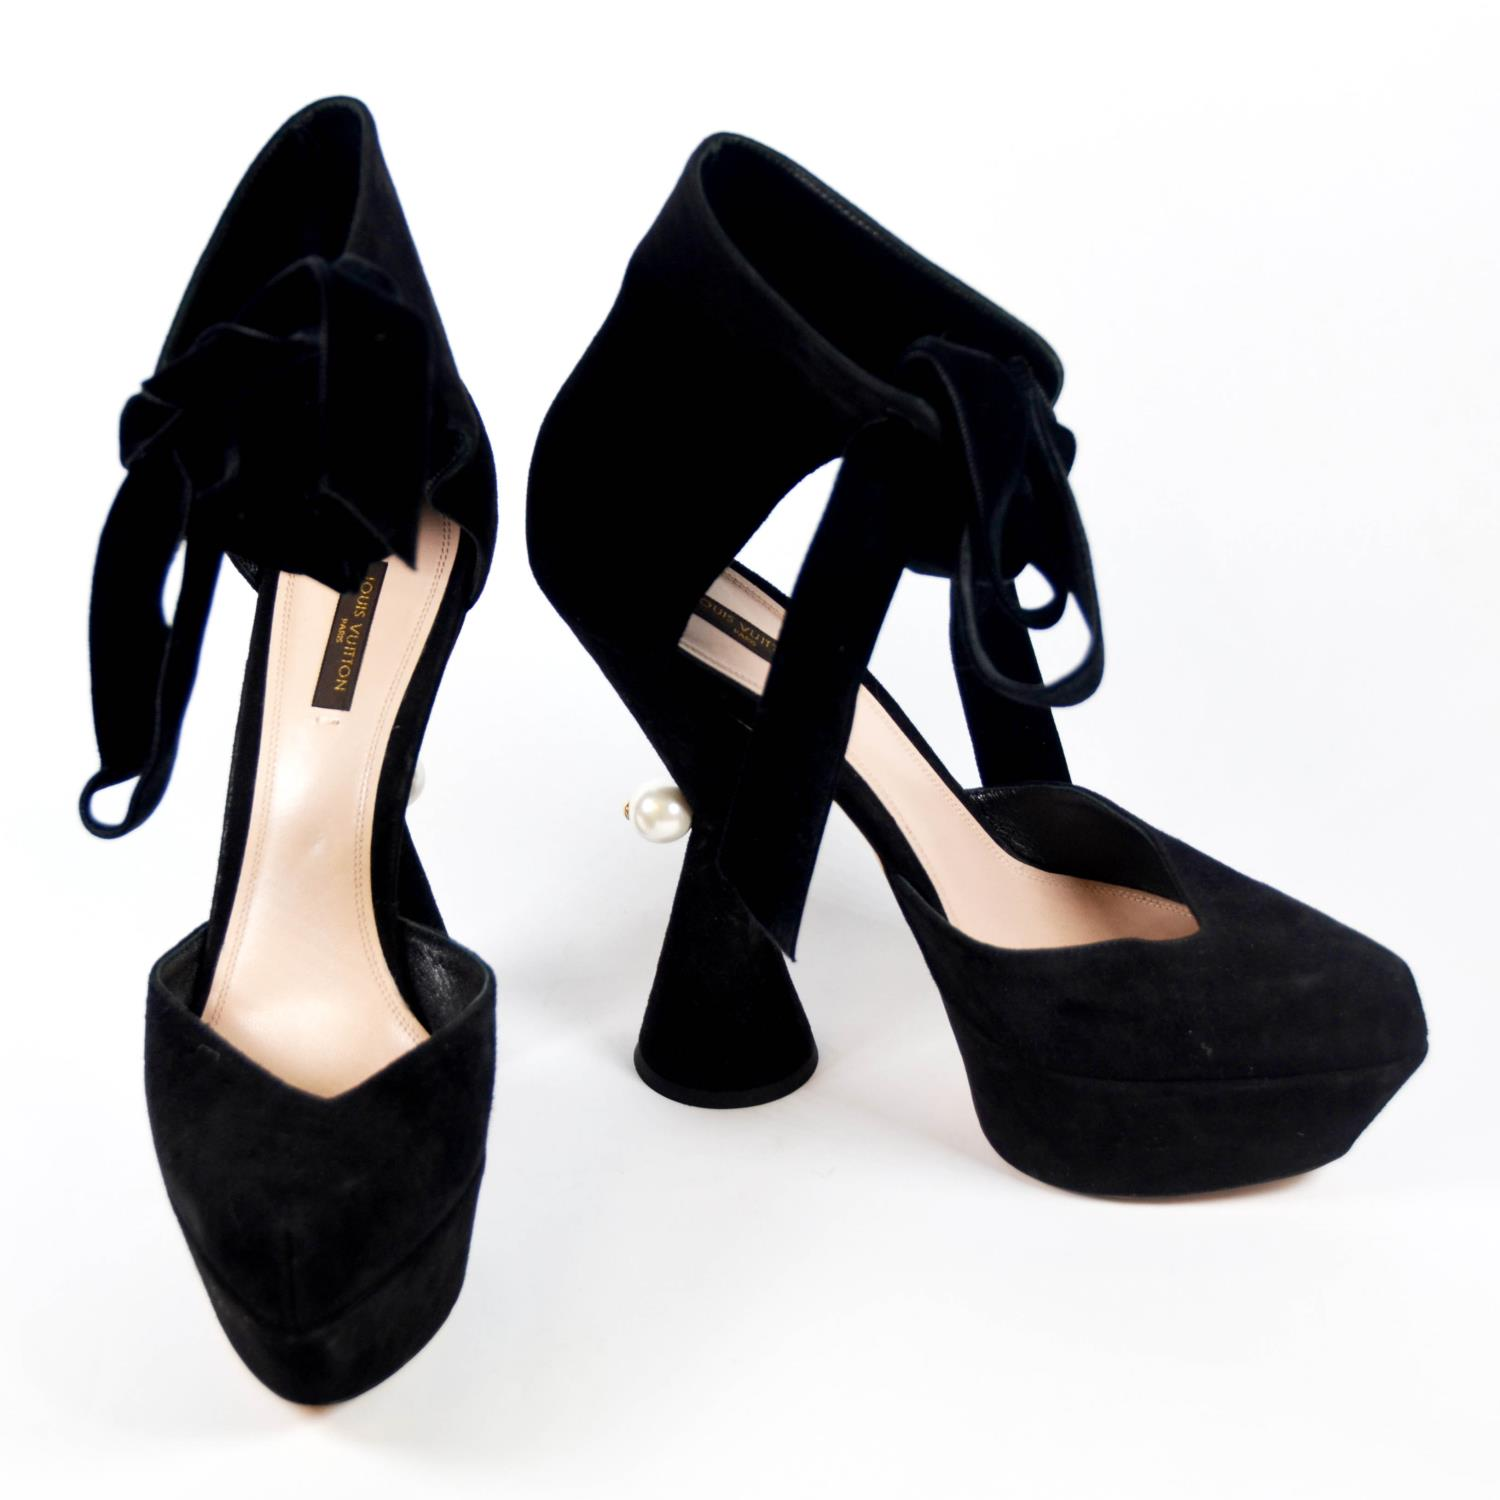 Lot 13A - LOUIS VUITTON, BLACK SUEDE HEELS With ribbon lace up ankle support, pointed wedge toe, hourglass